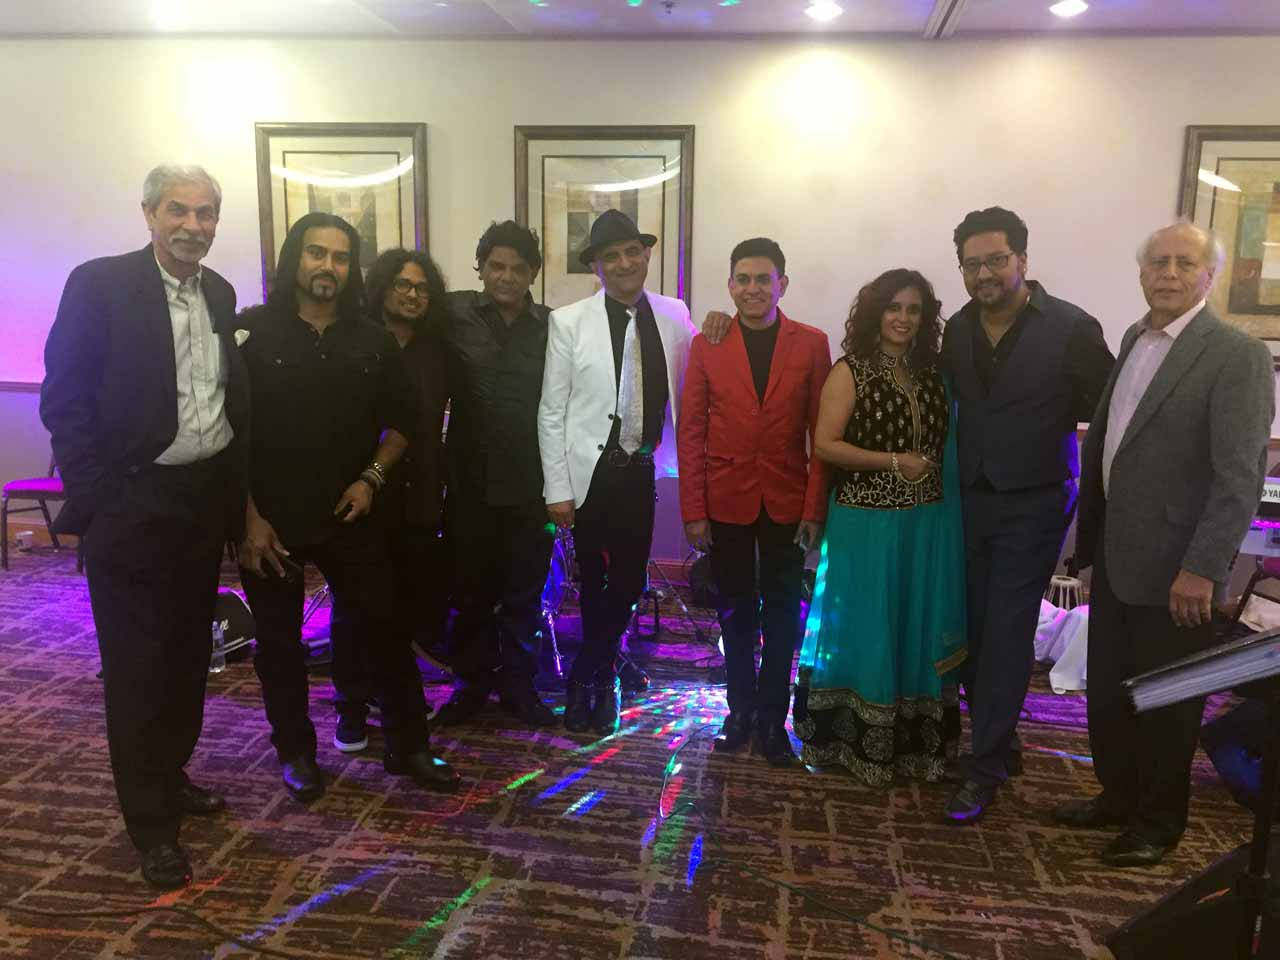 The Organizing Team with the Musicians